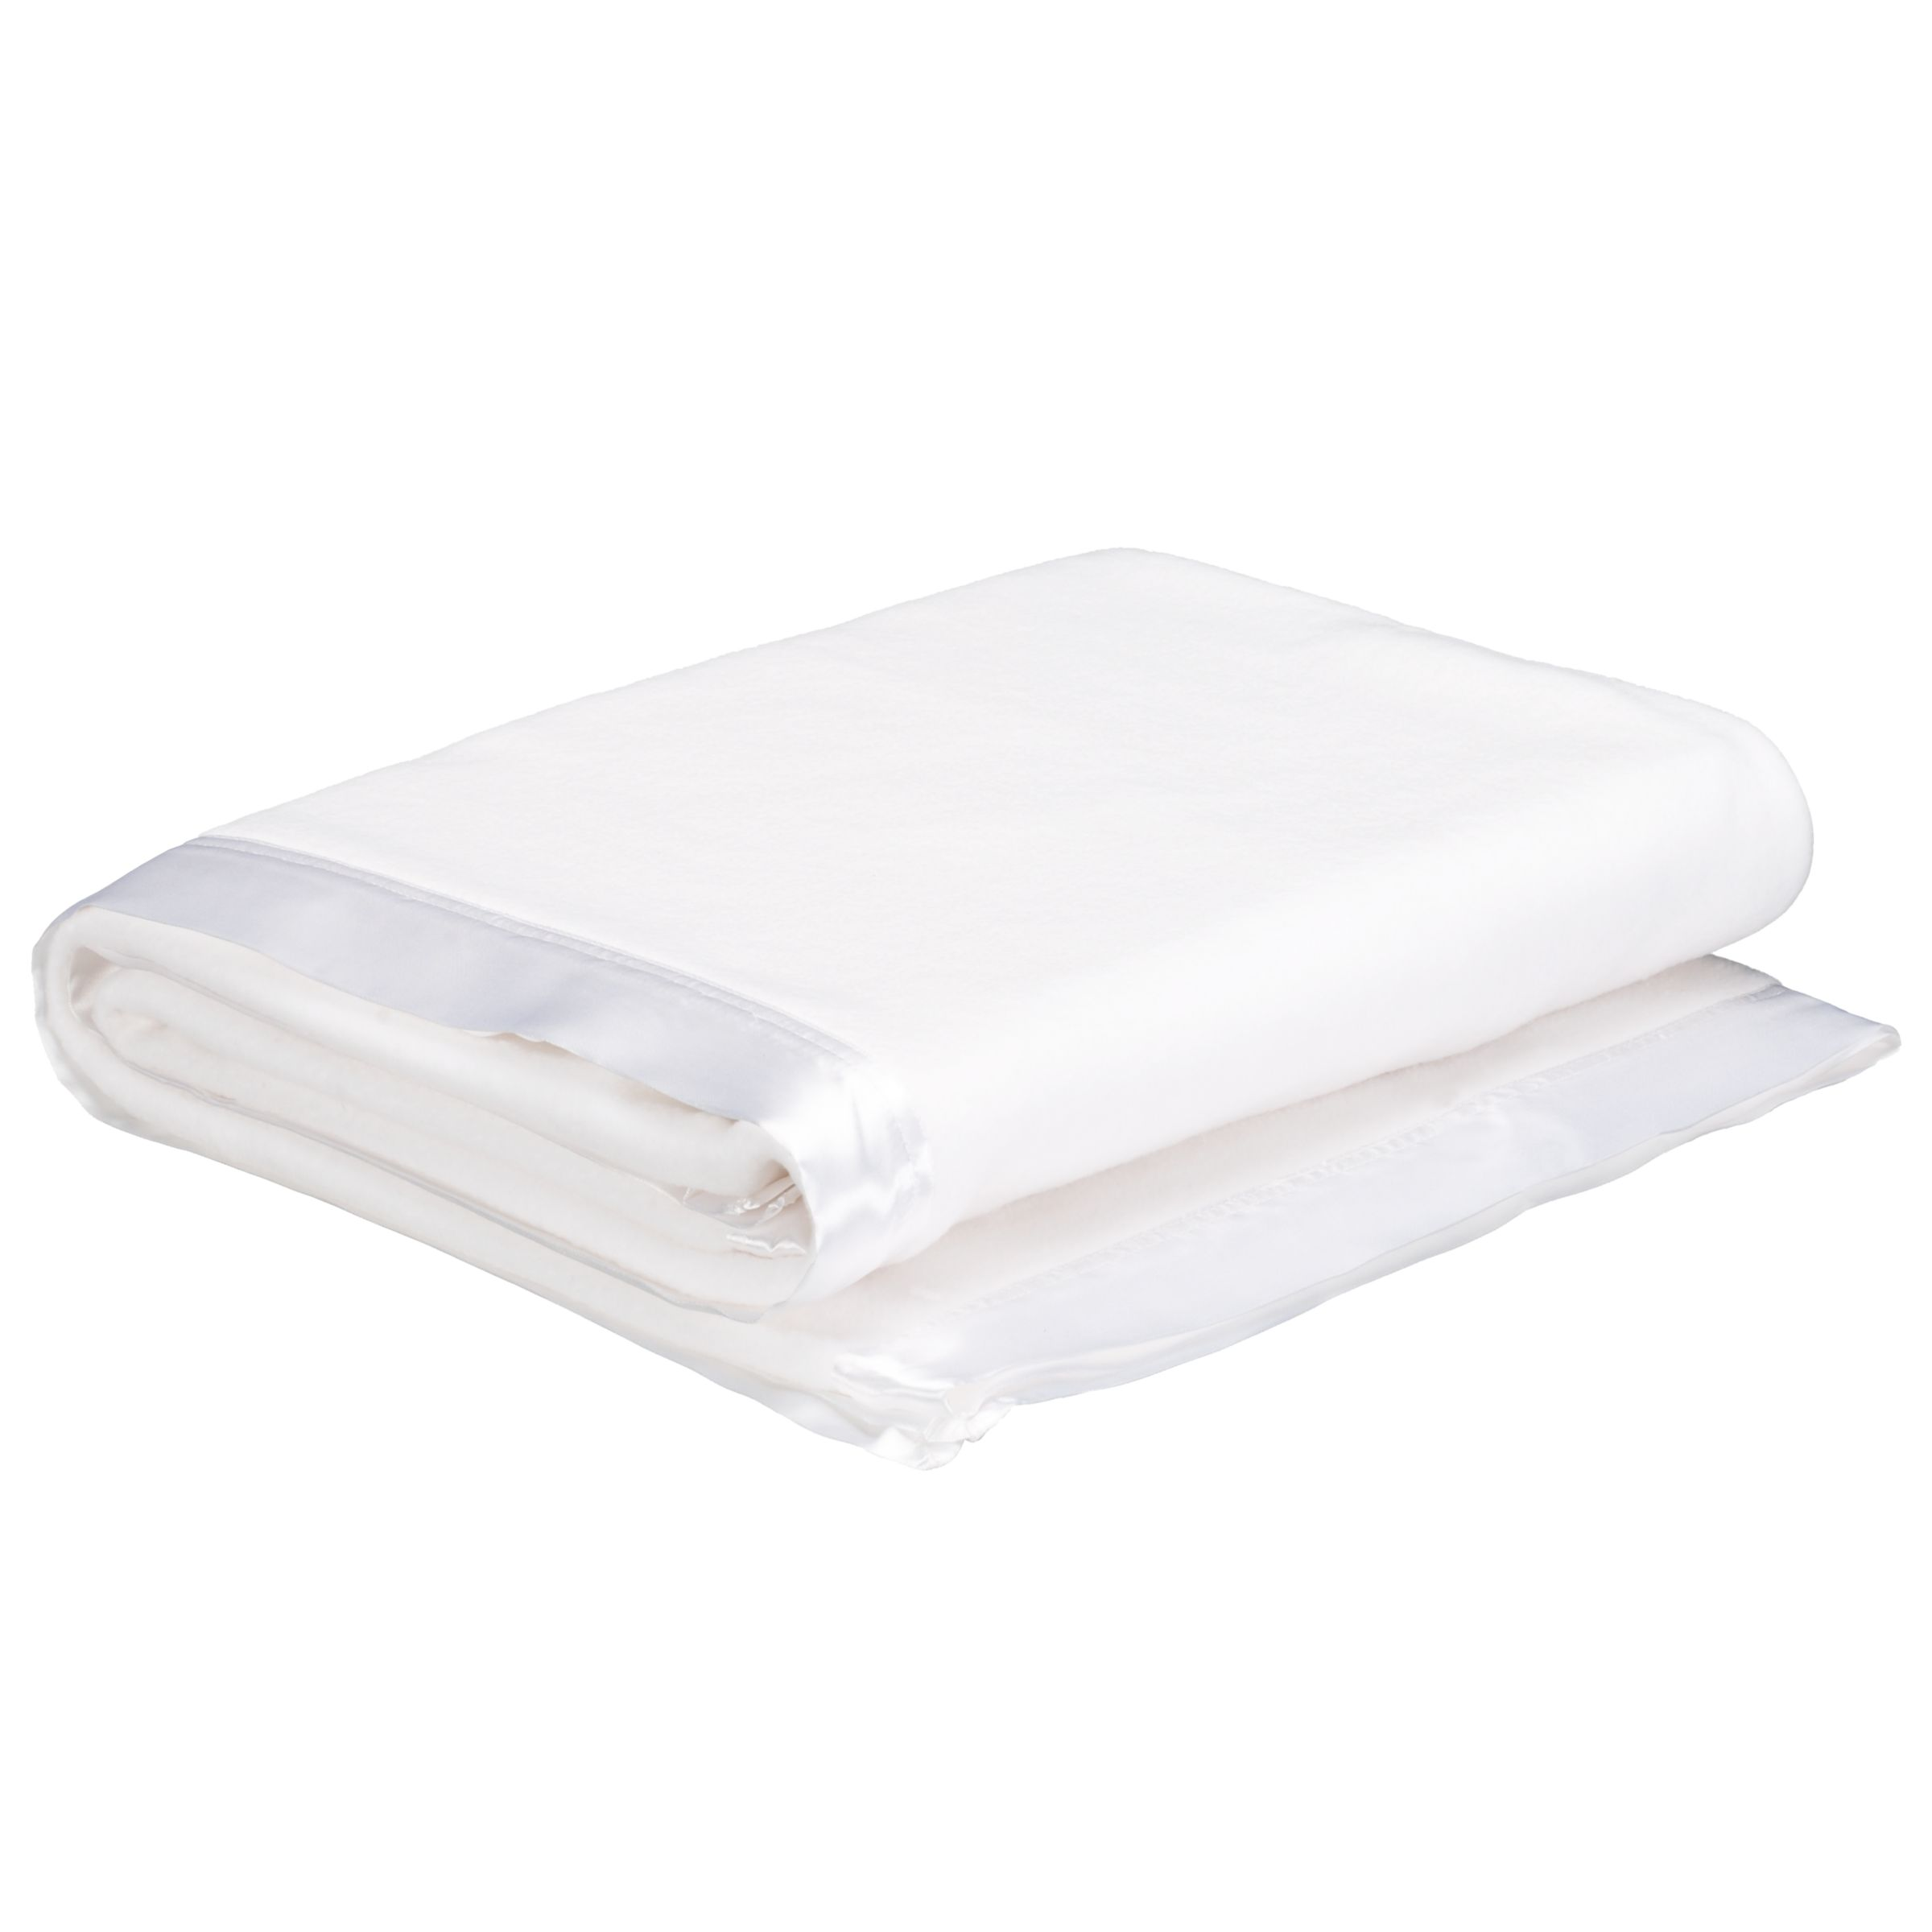 Cotbed Satin Edge Blanket, White